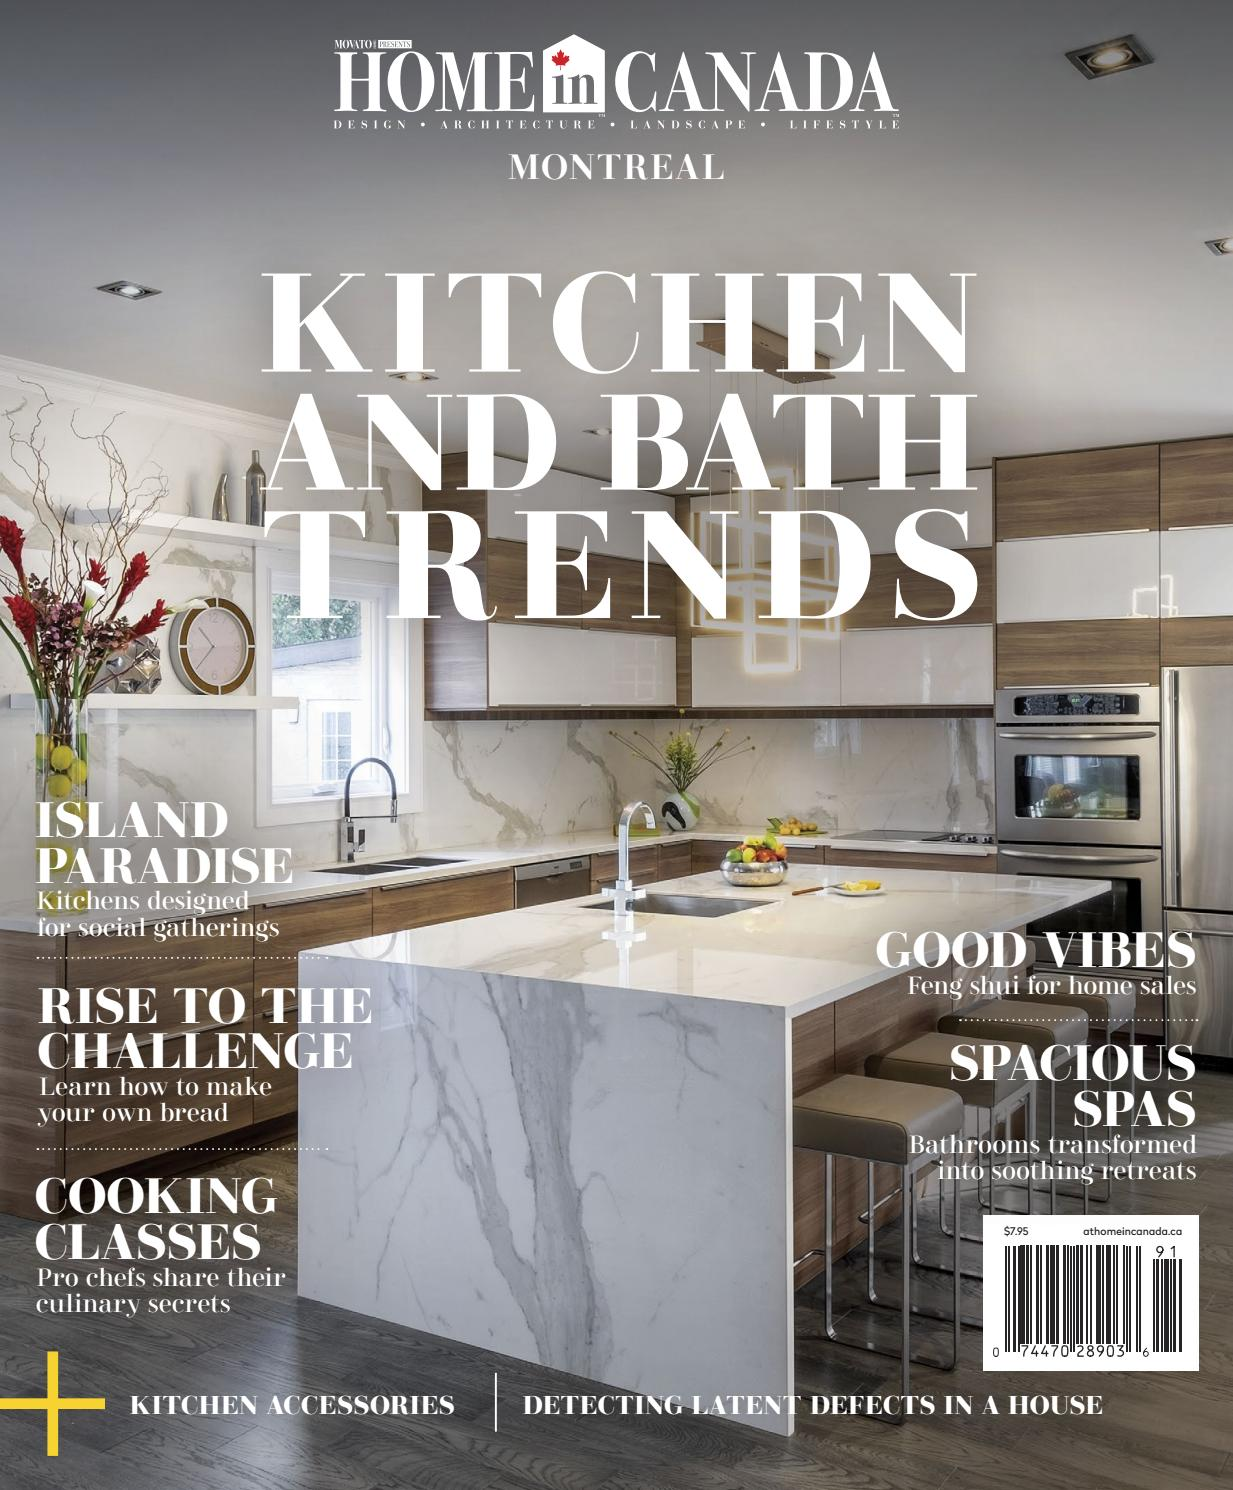 Home in canada montreal kitchen and bath trends 2019 by home in canada design ▫ architecture ▫ landscape ▫ lifestyle issuu